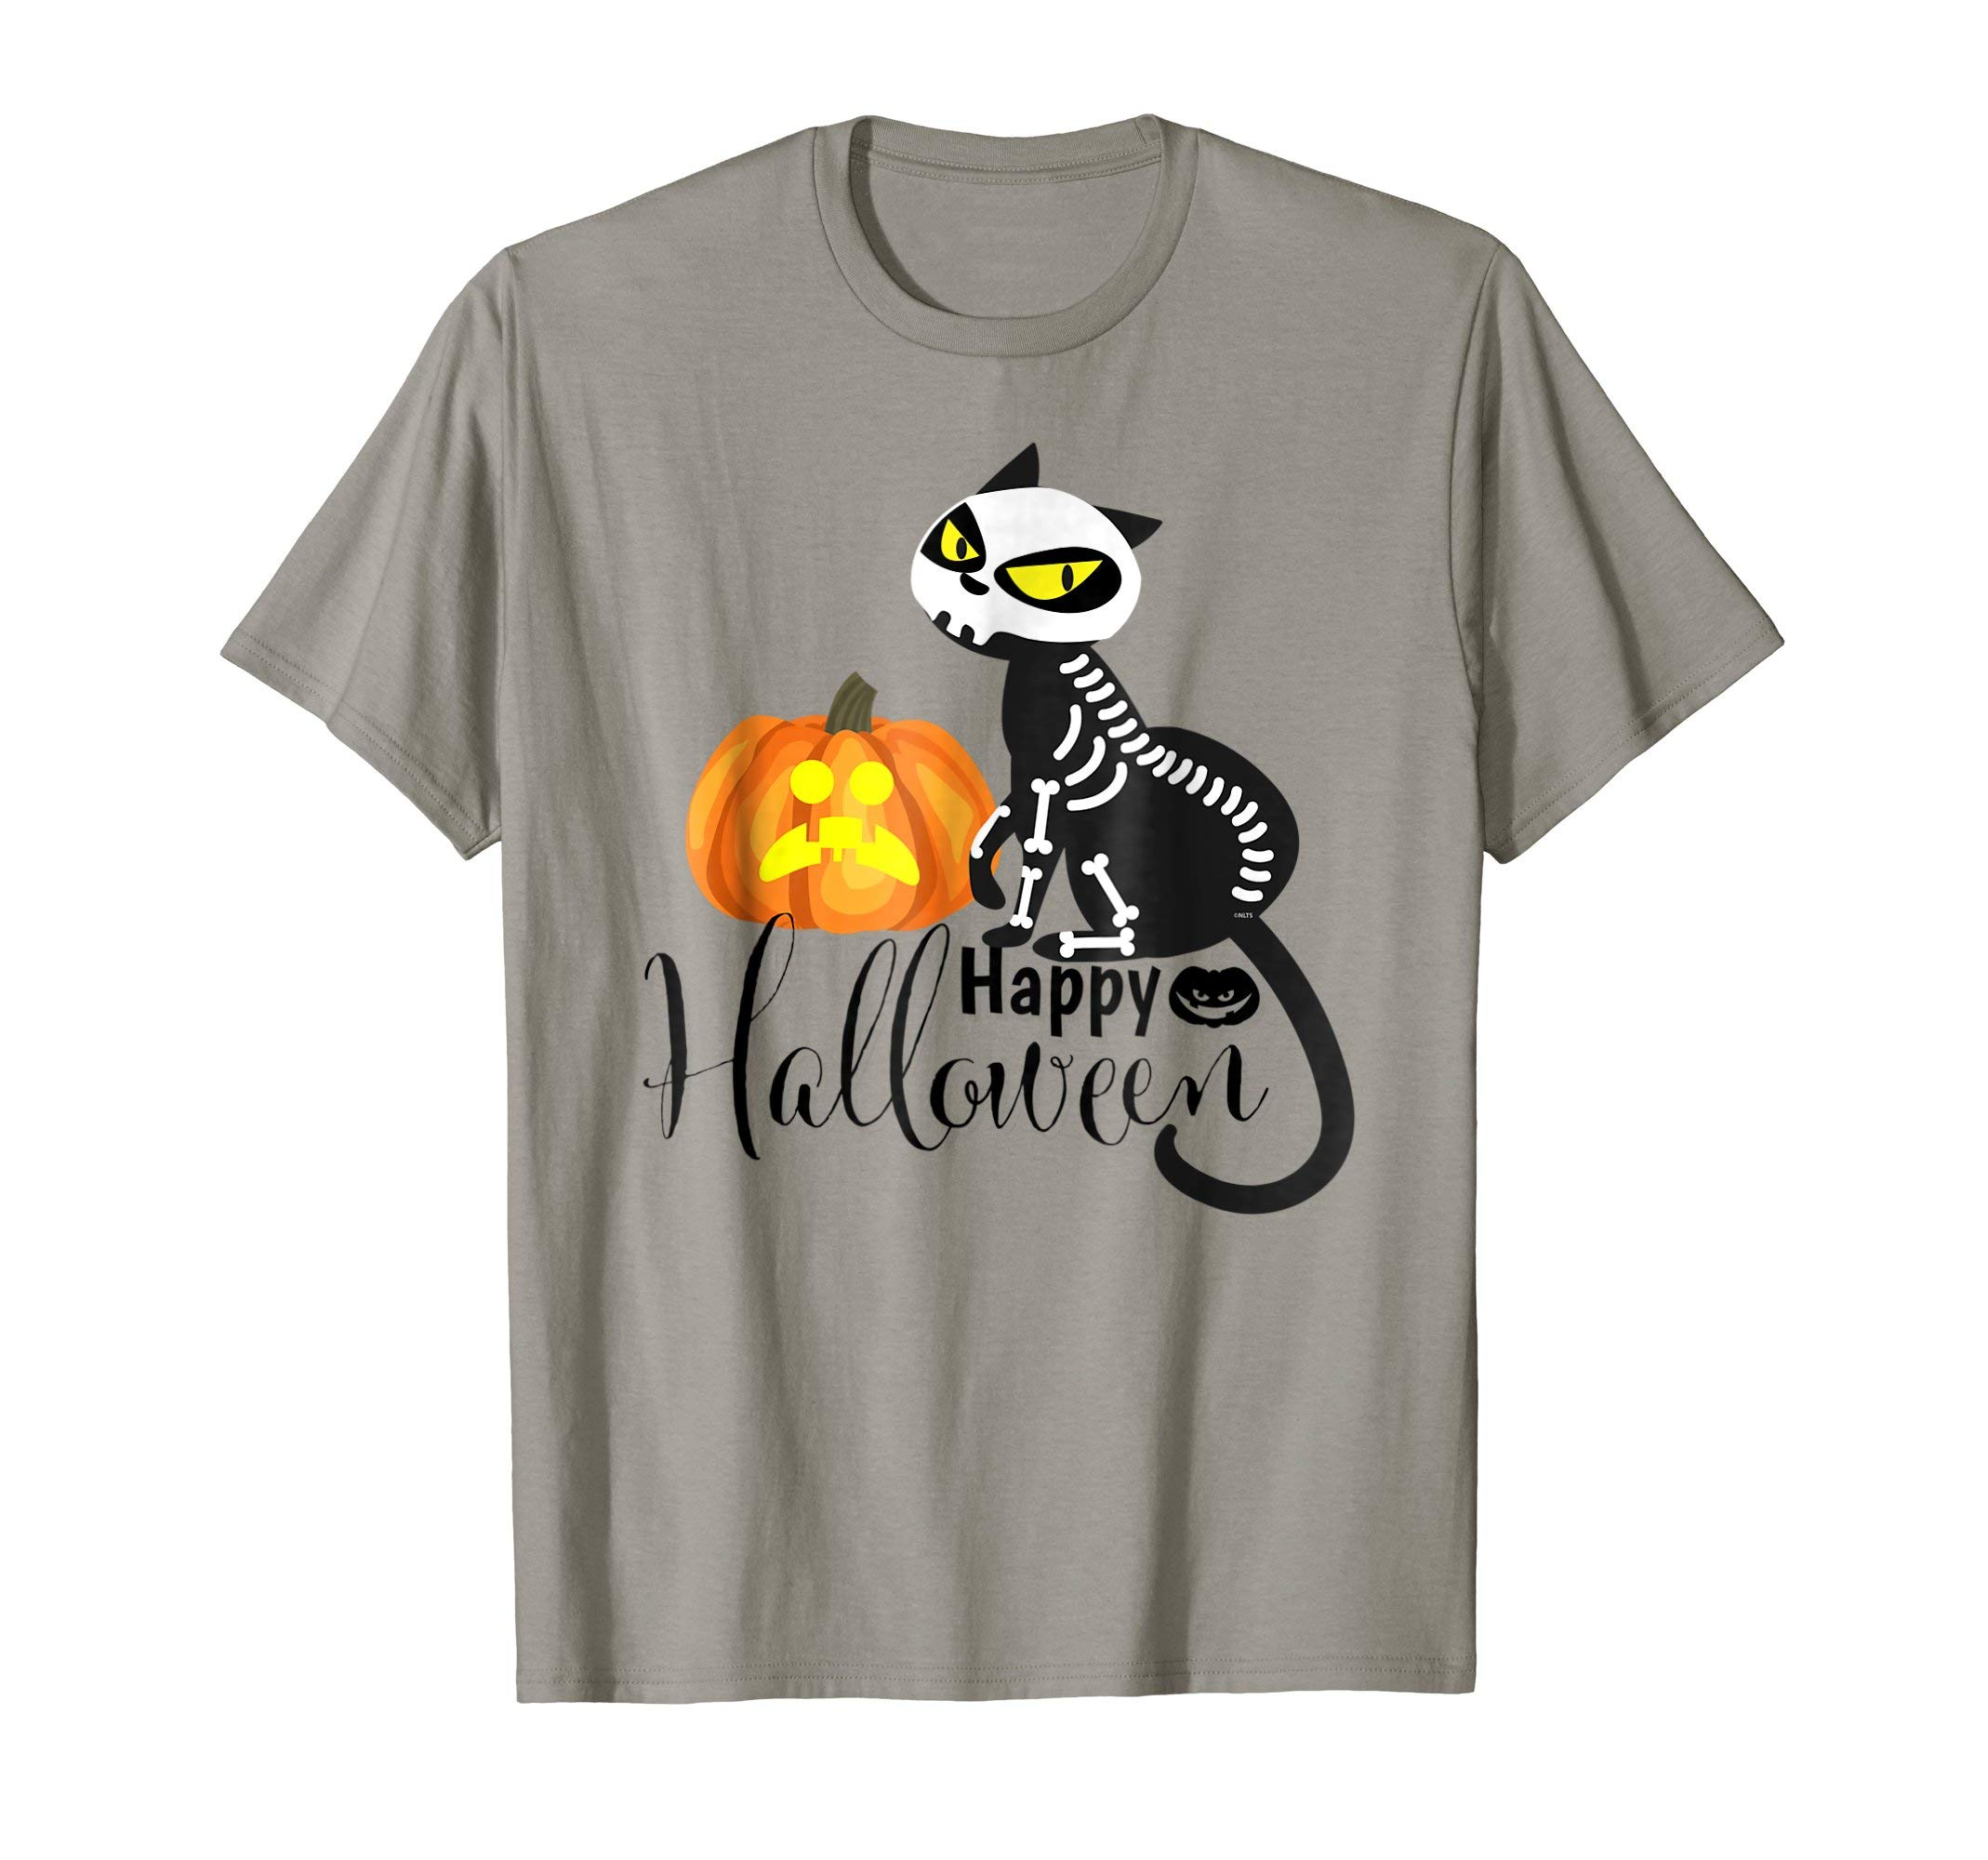 Happy-Halloween-Skeleton-Cat-T-Shirt-Tee-Gifts-Shirt